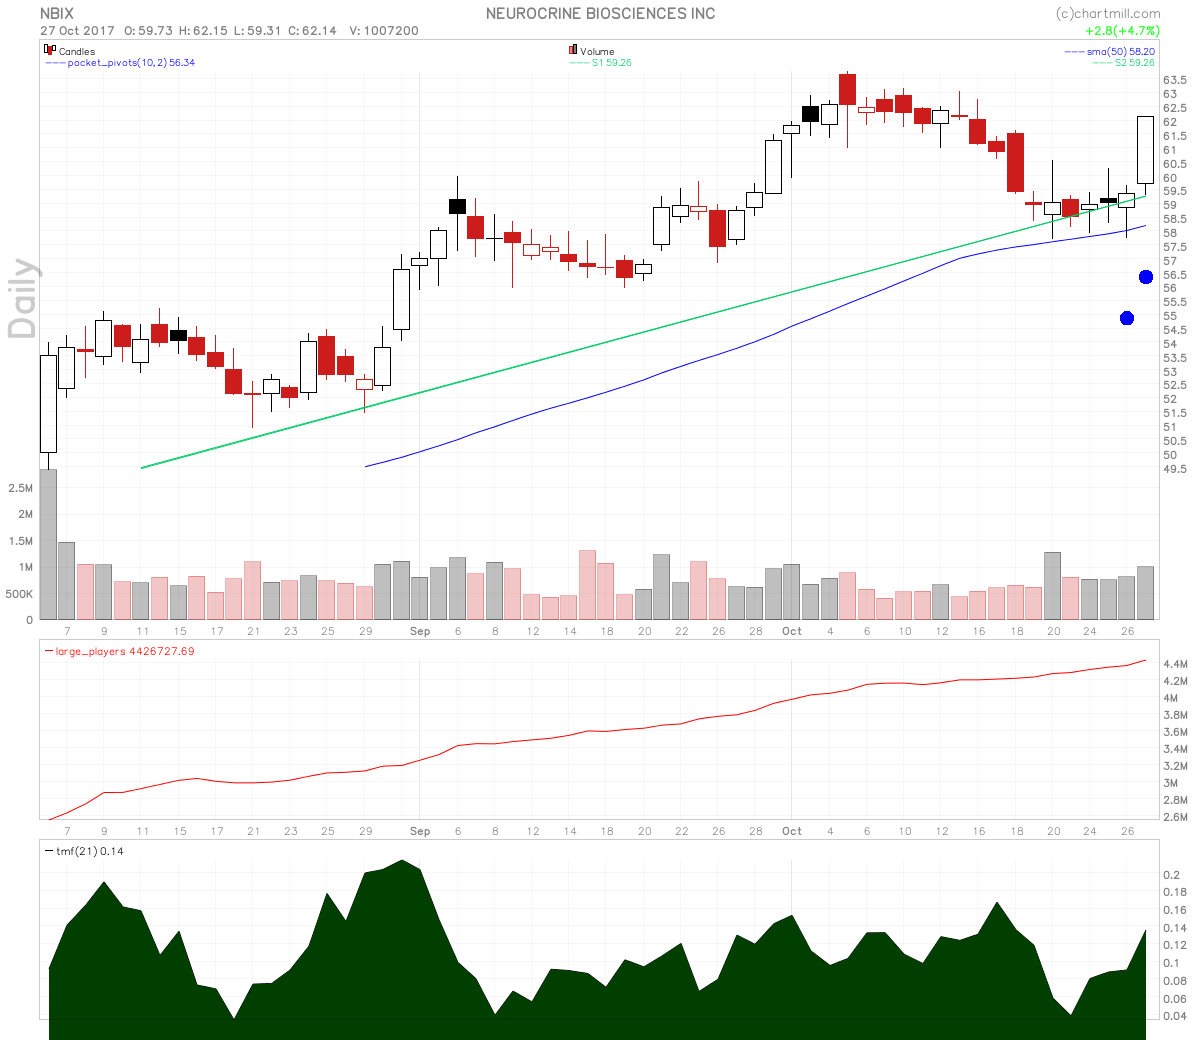 Neurocrine Biosciences stock shows a candle over candle reversal off of uptrend line support.